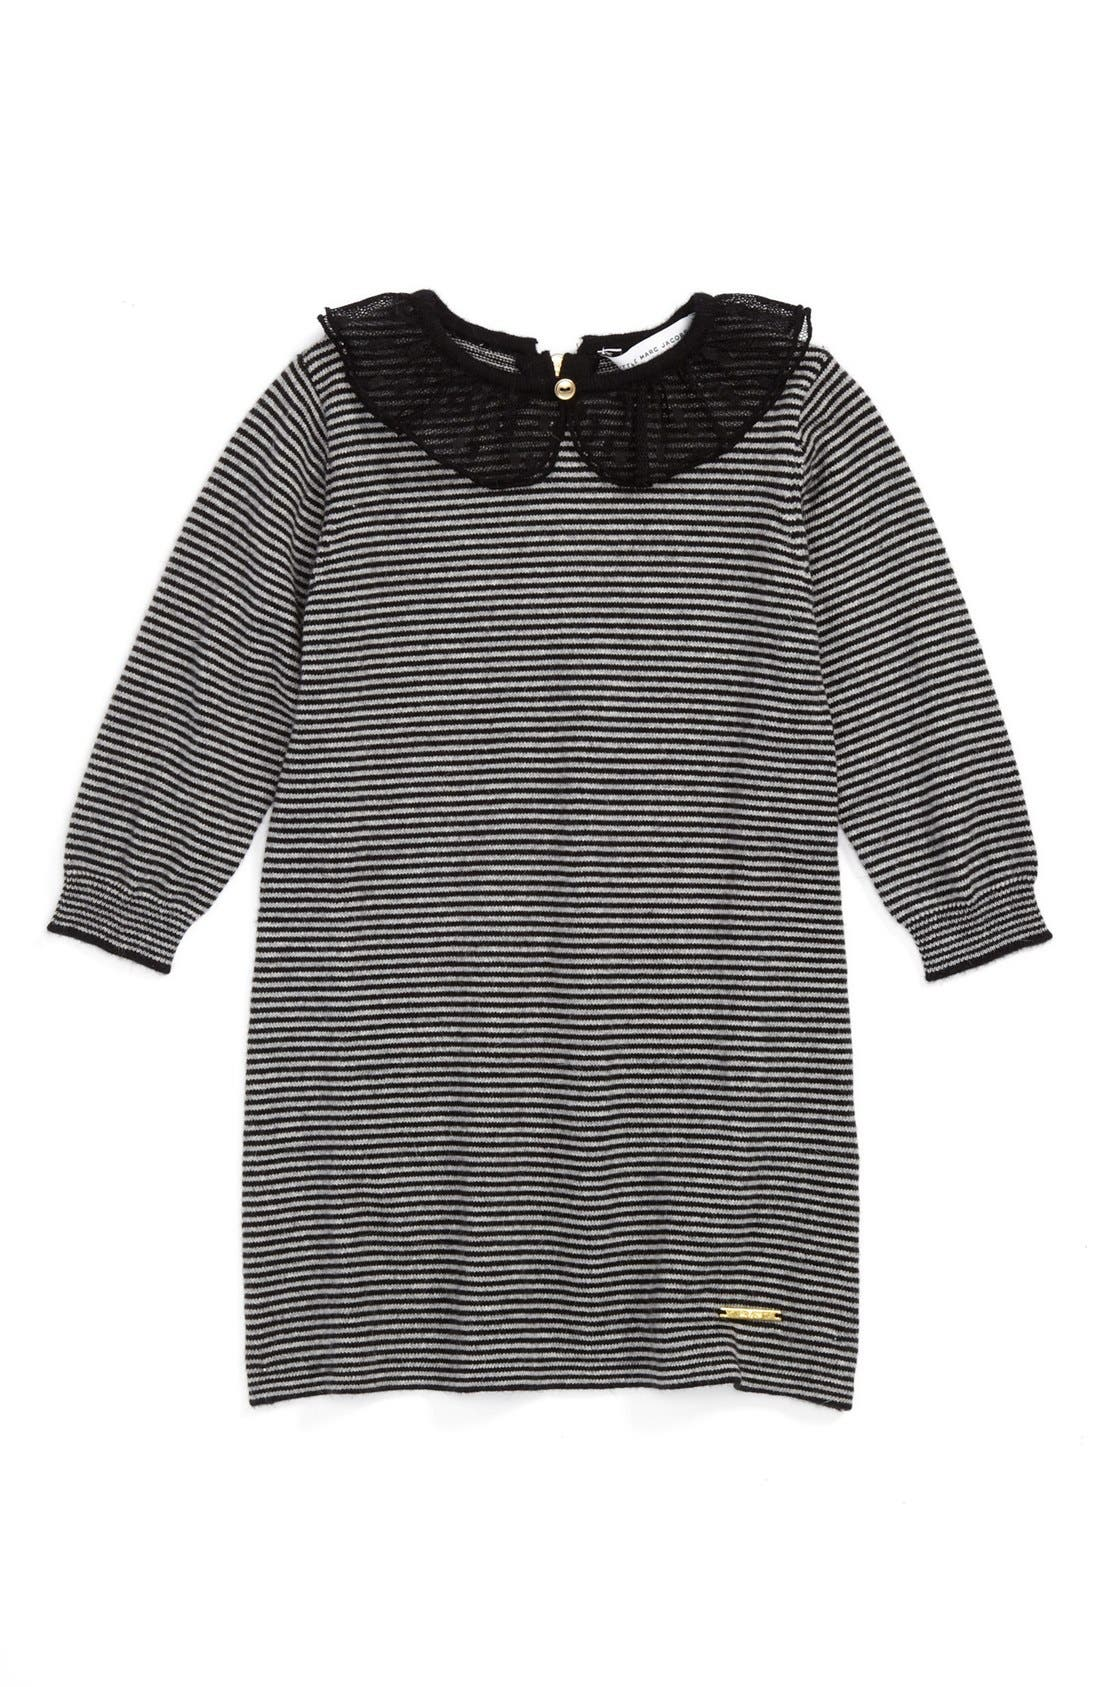 Alternate Image 1 Selected - LITTLE MARC JACOBS Long Sleeve Dress (Baby Girls)